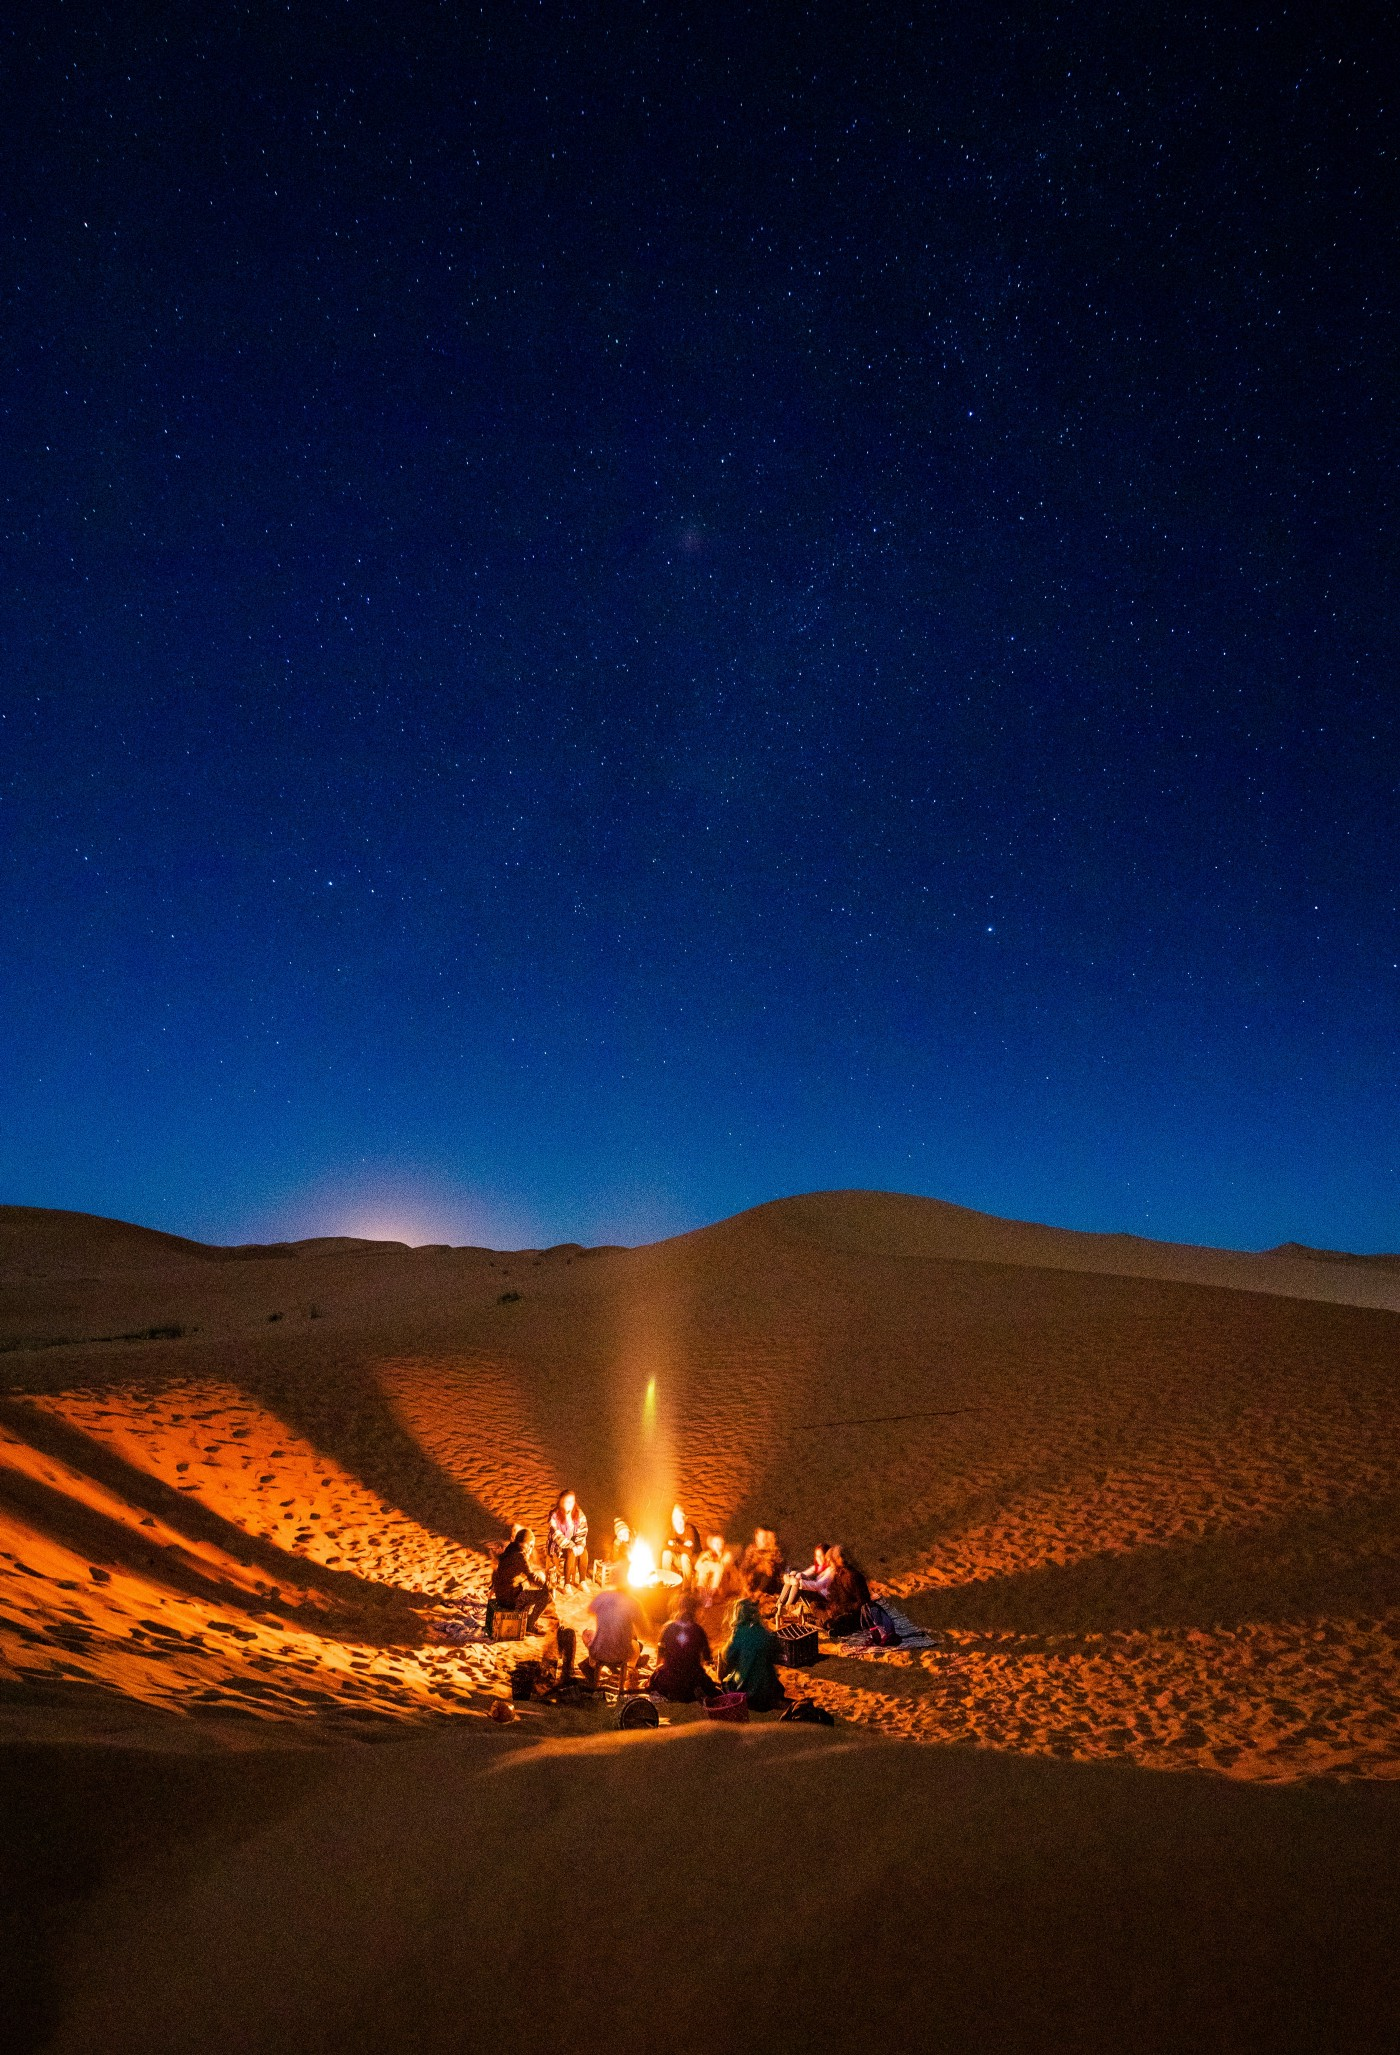 People sitting in a campfire under the night sky.